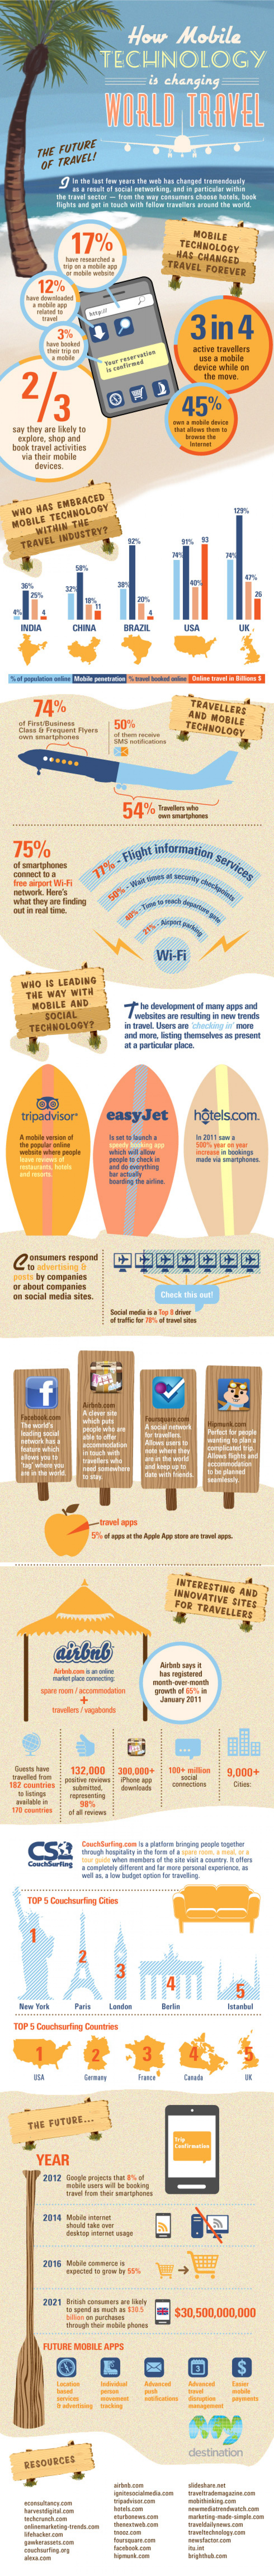 How Mobile Technology is Changing World Travel Infographic